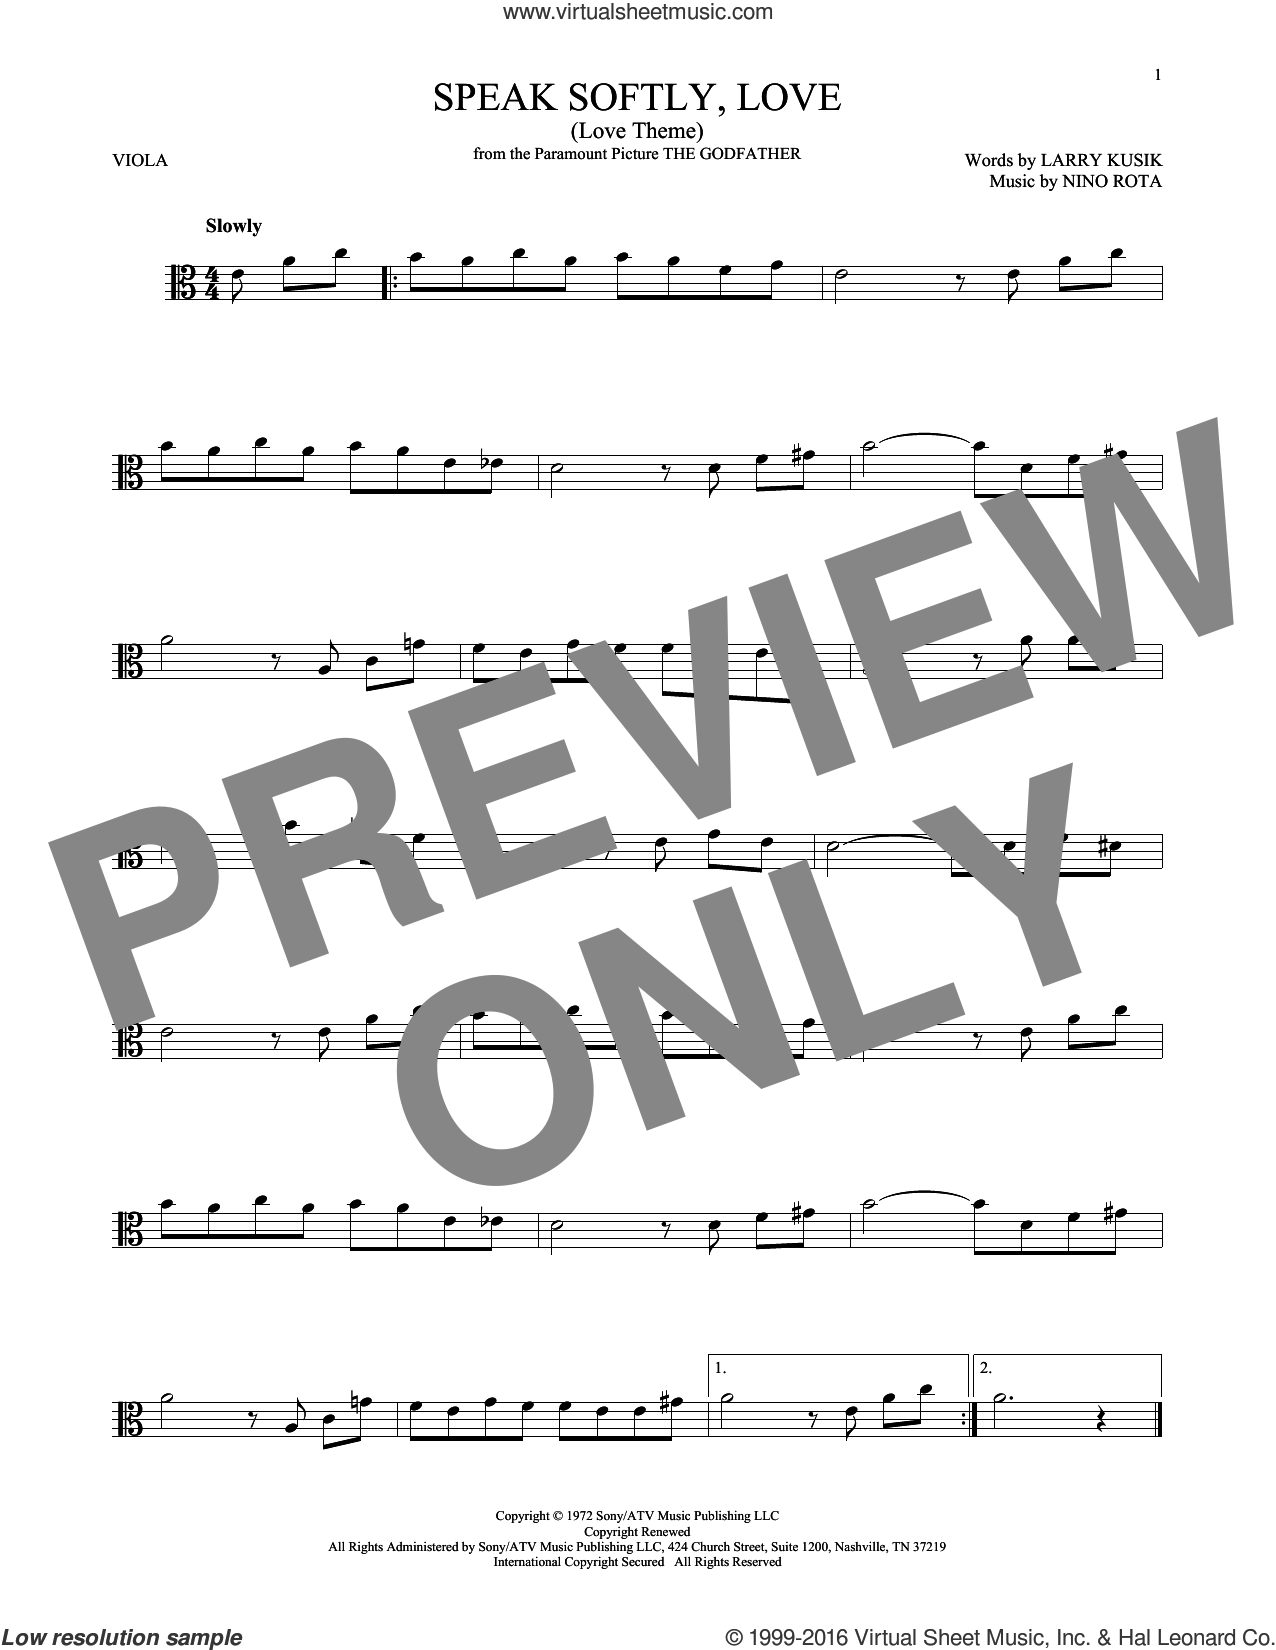 Speak Softly, Love (Love Theme) sheet music for viola solo by Andy Williams, Larry Kusik and Nino Rota, intermediate skill level